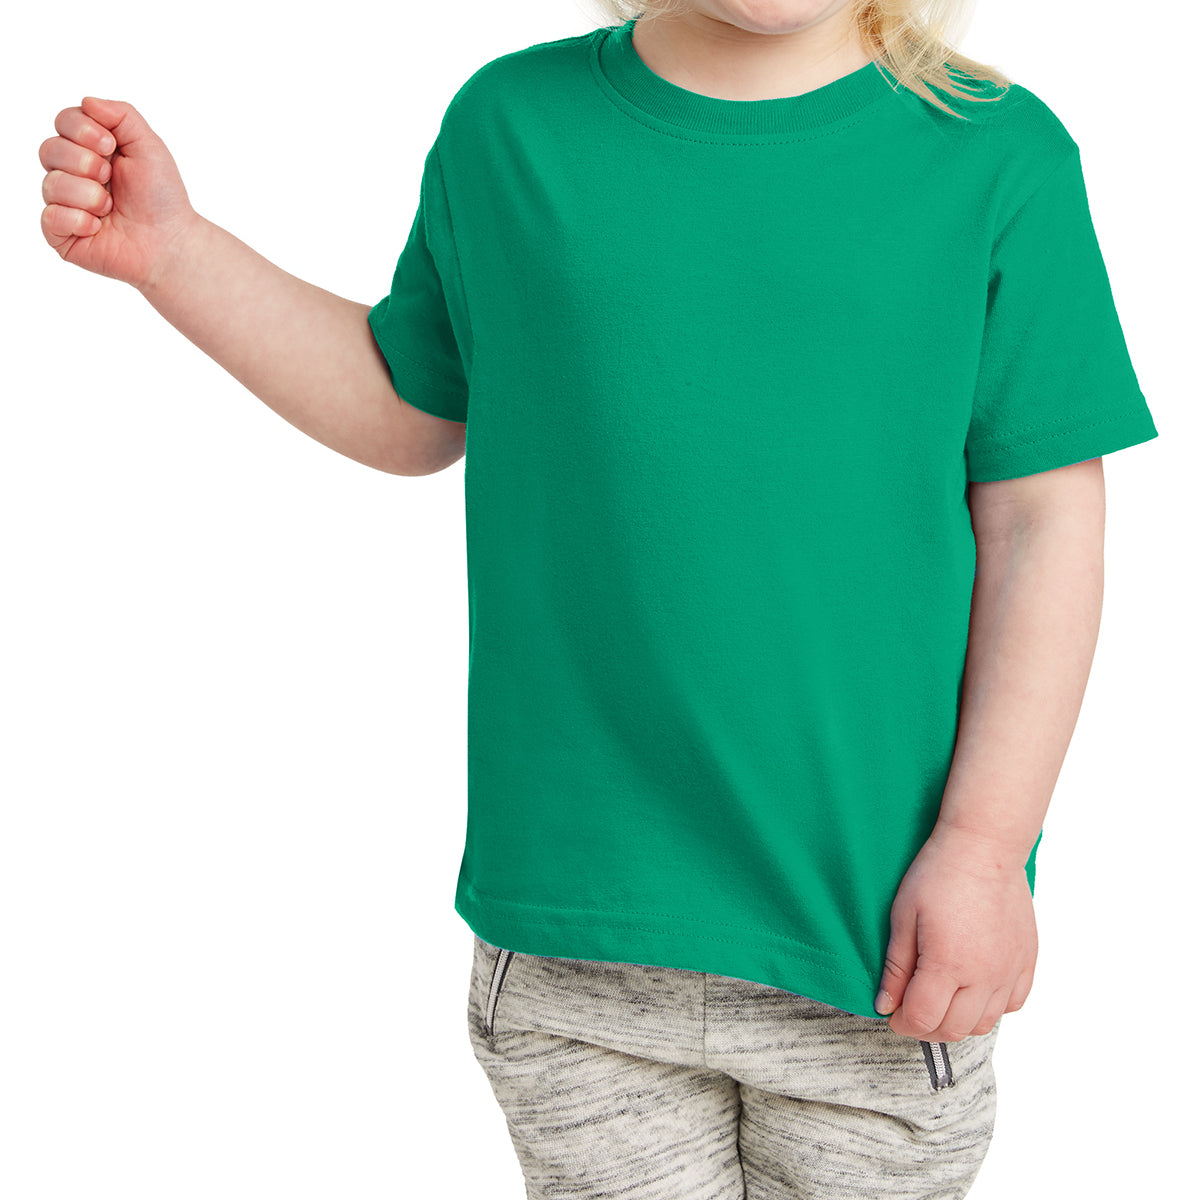 Toddler Fine Jersey Tee - Kelly